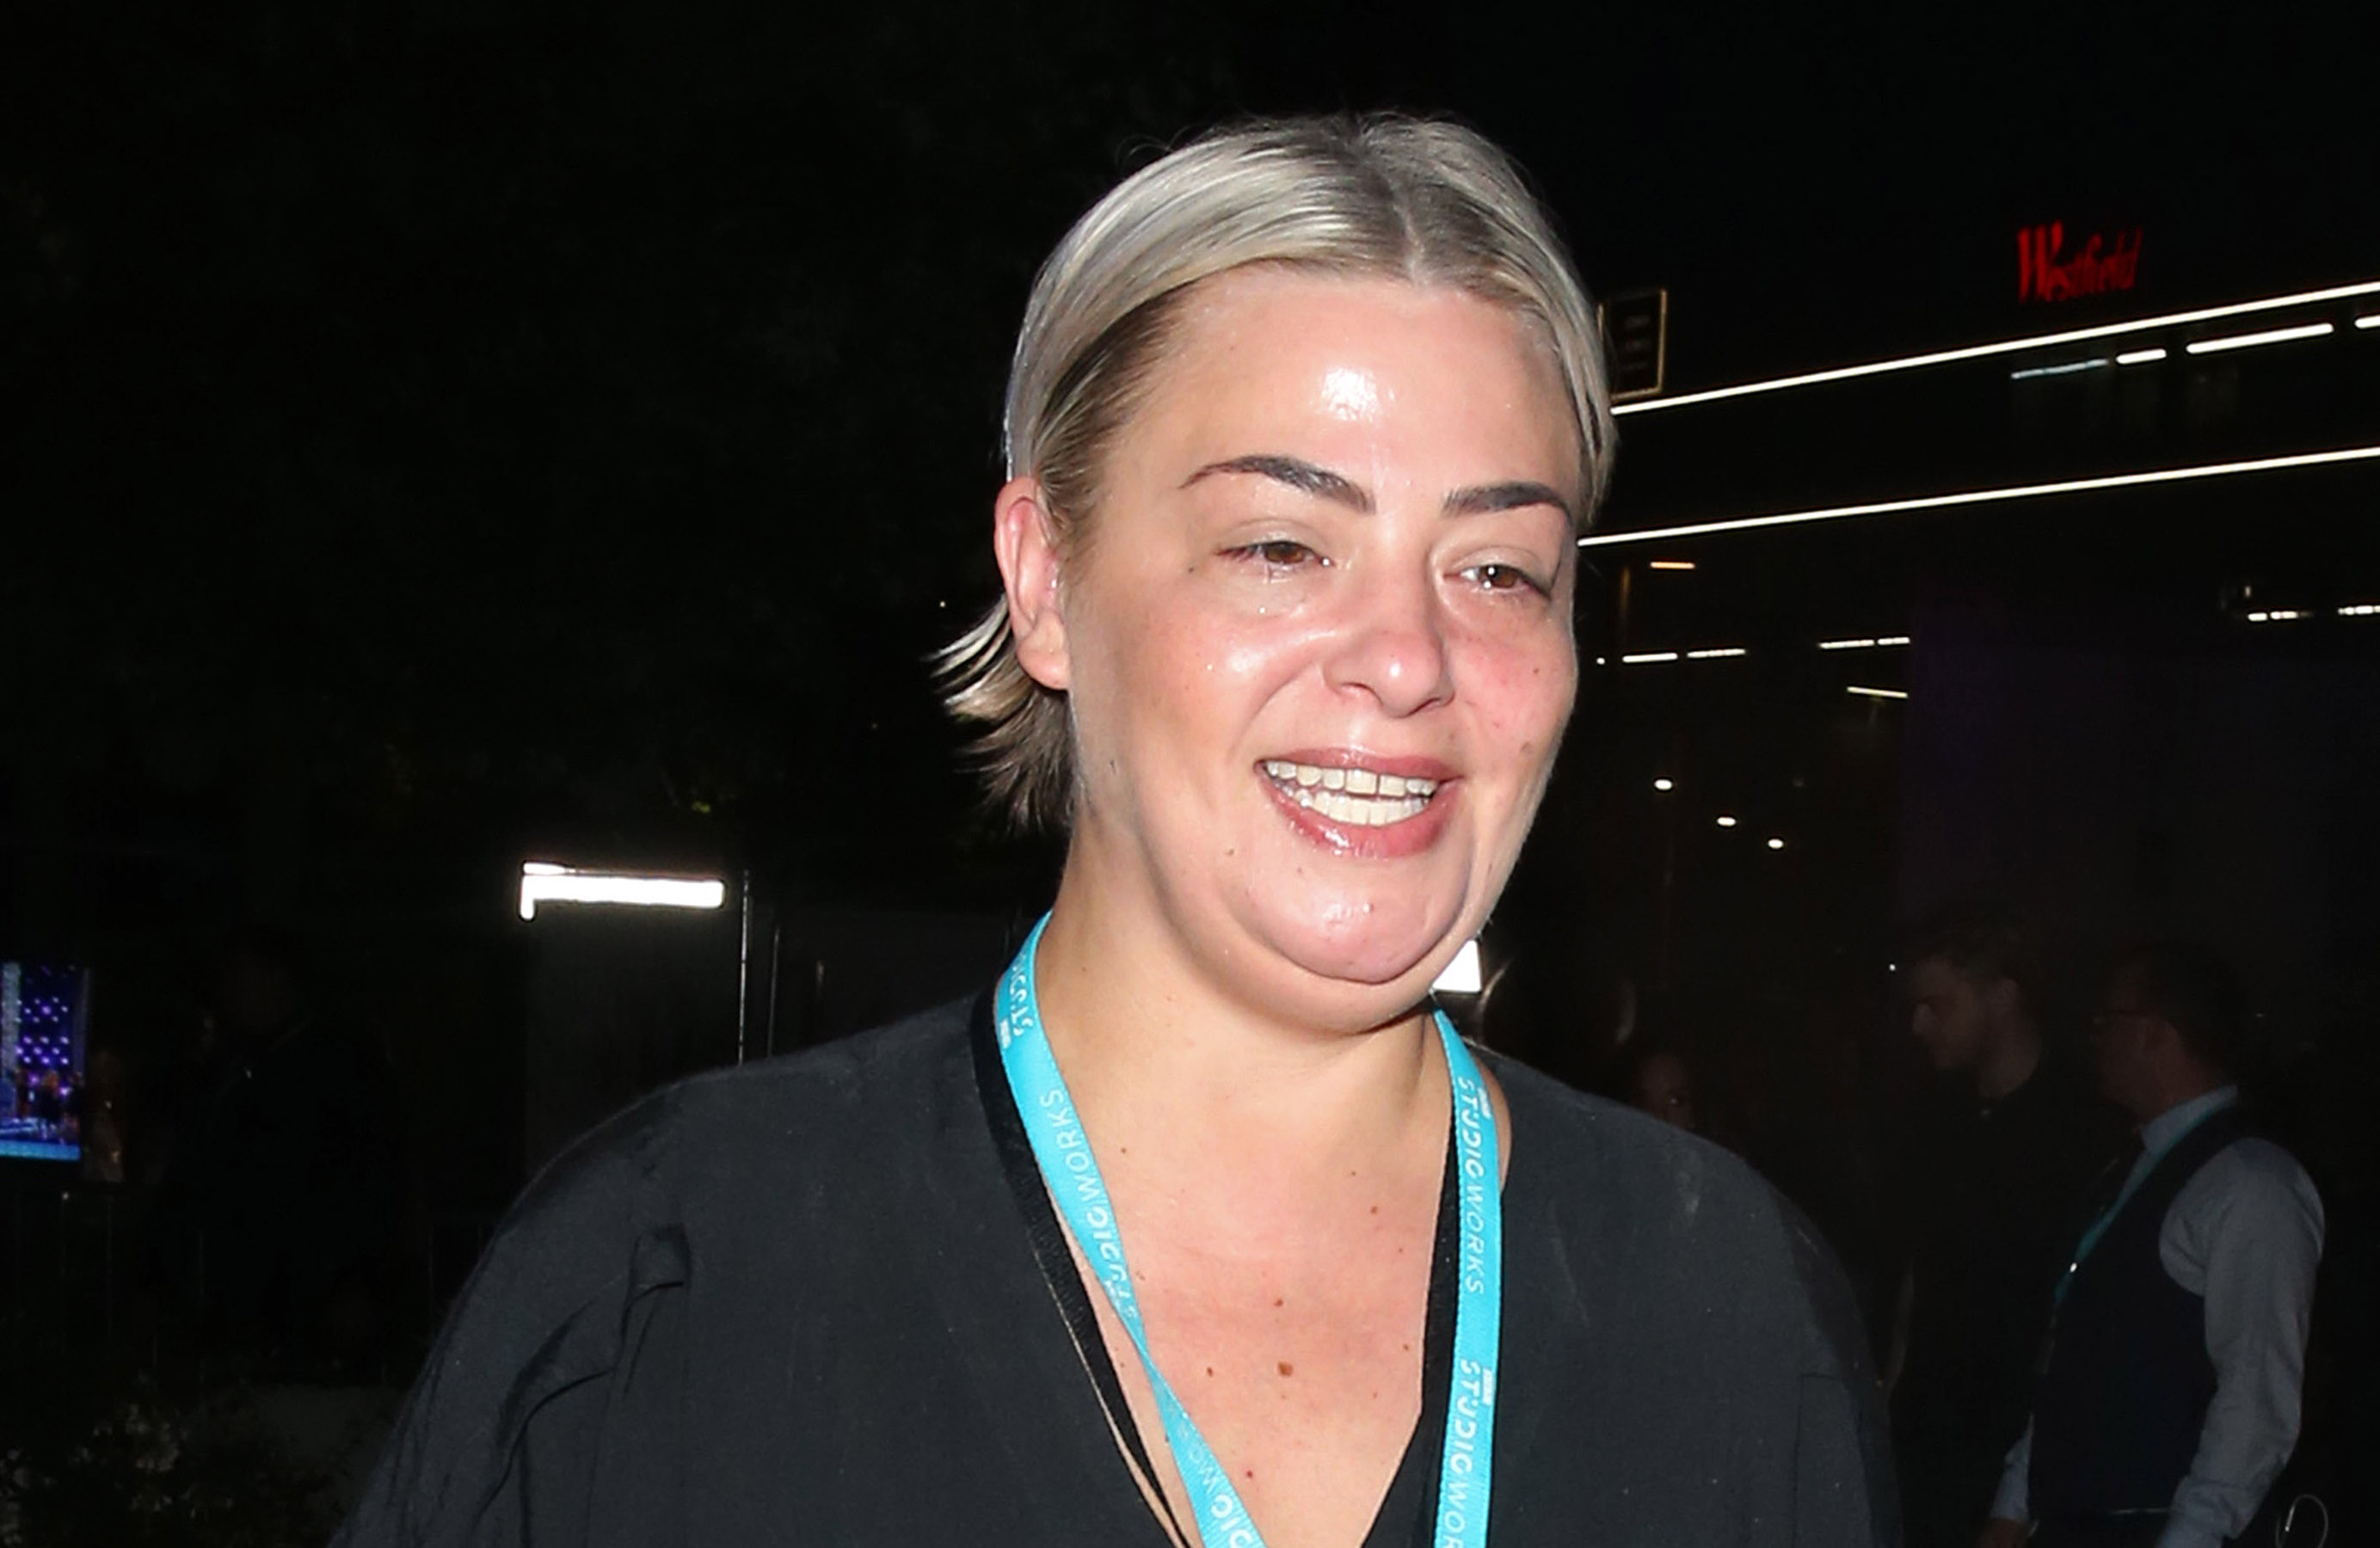 Lisa Armstrong stuns fans as she shows off dramatic new look